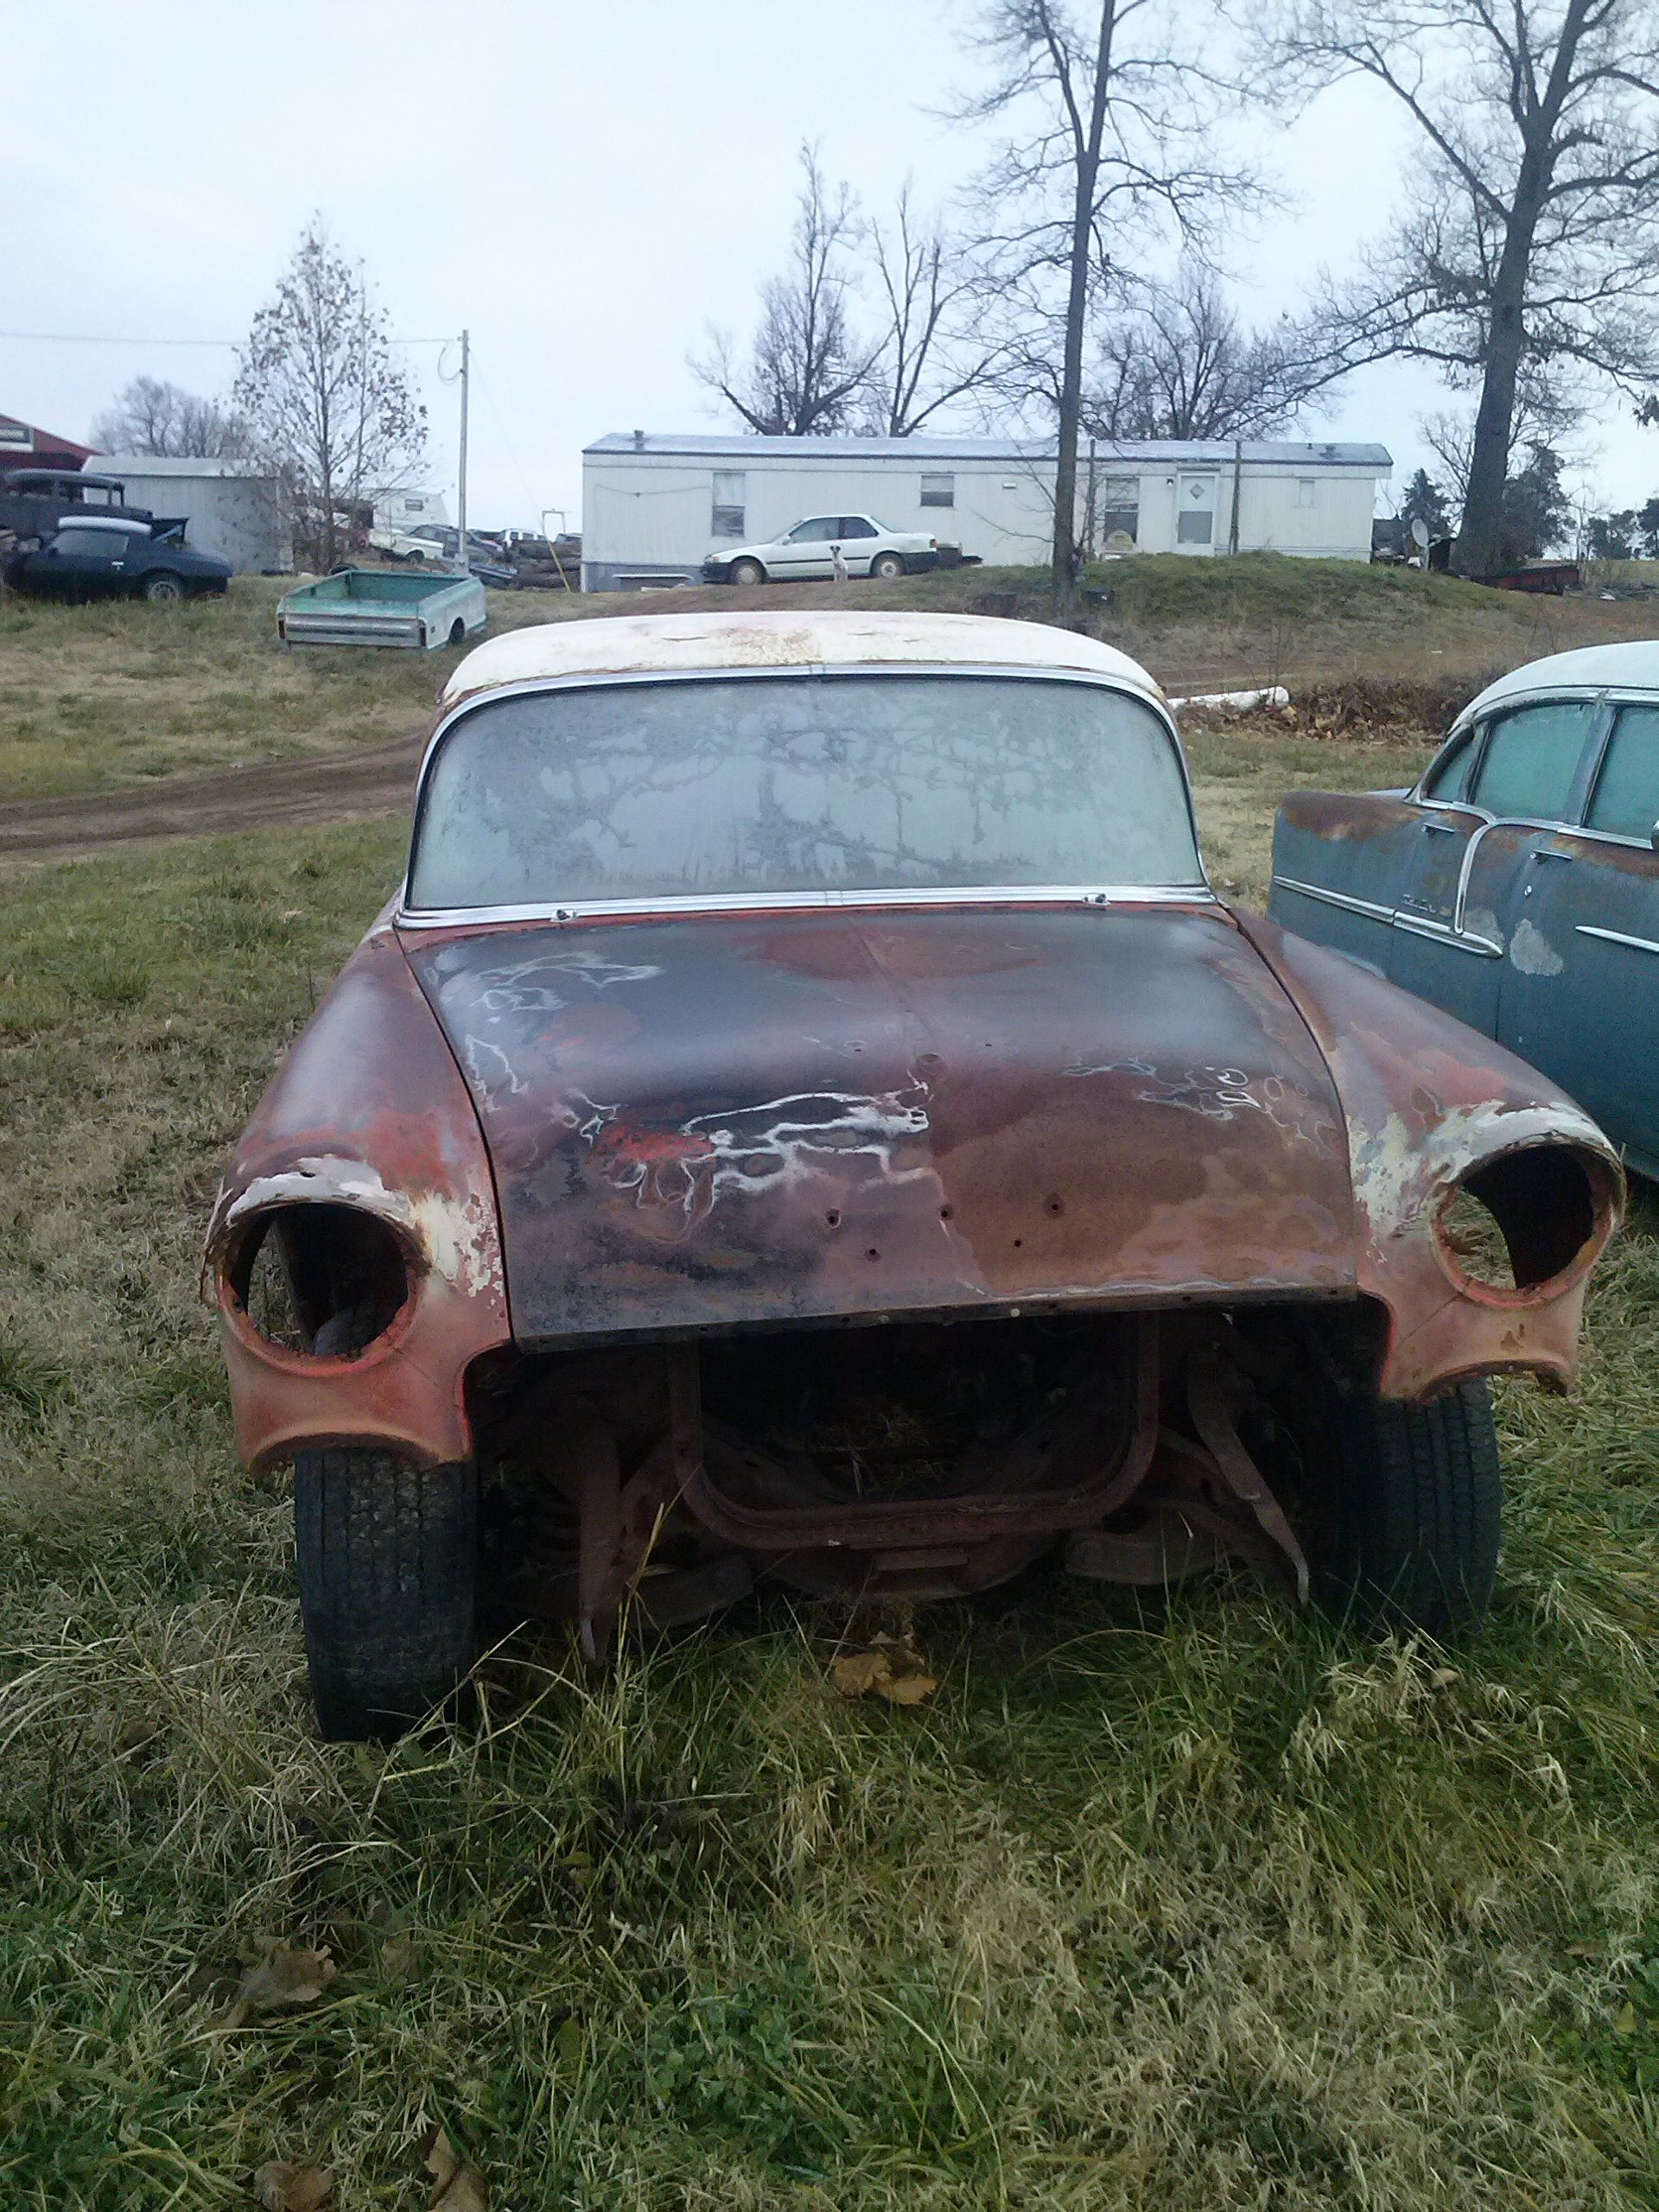 '55 Chevy 2-door post for sale somewhere in North Central Arkansas. Tripper's Travels.